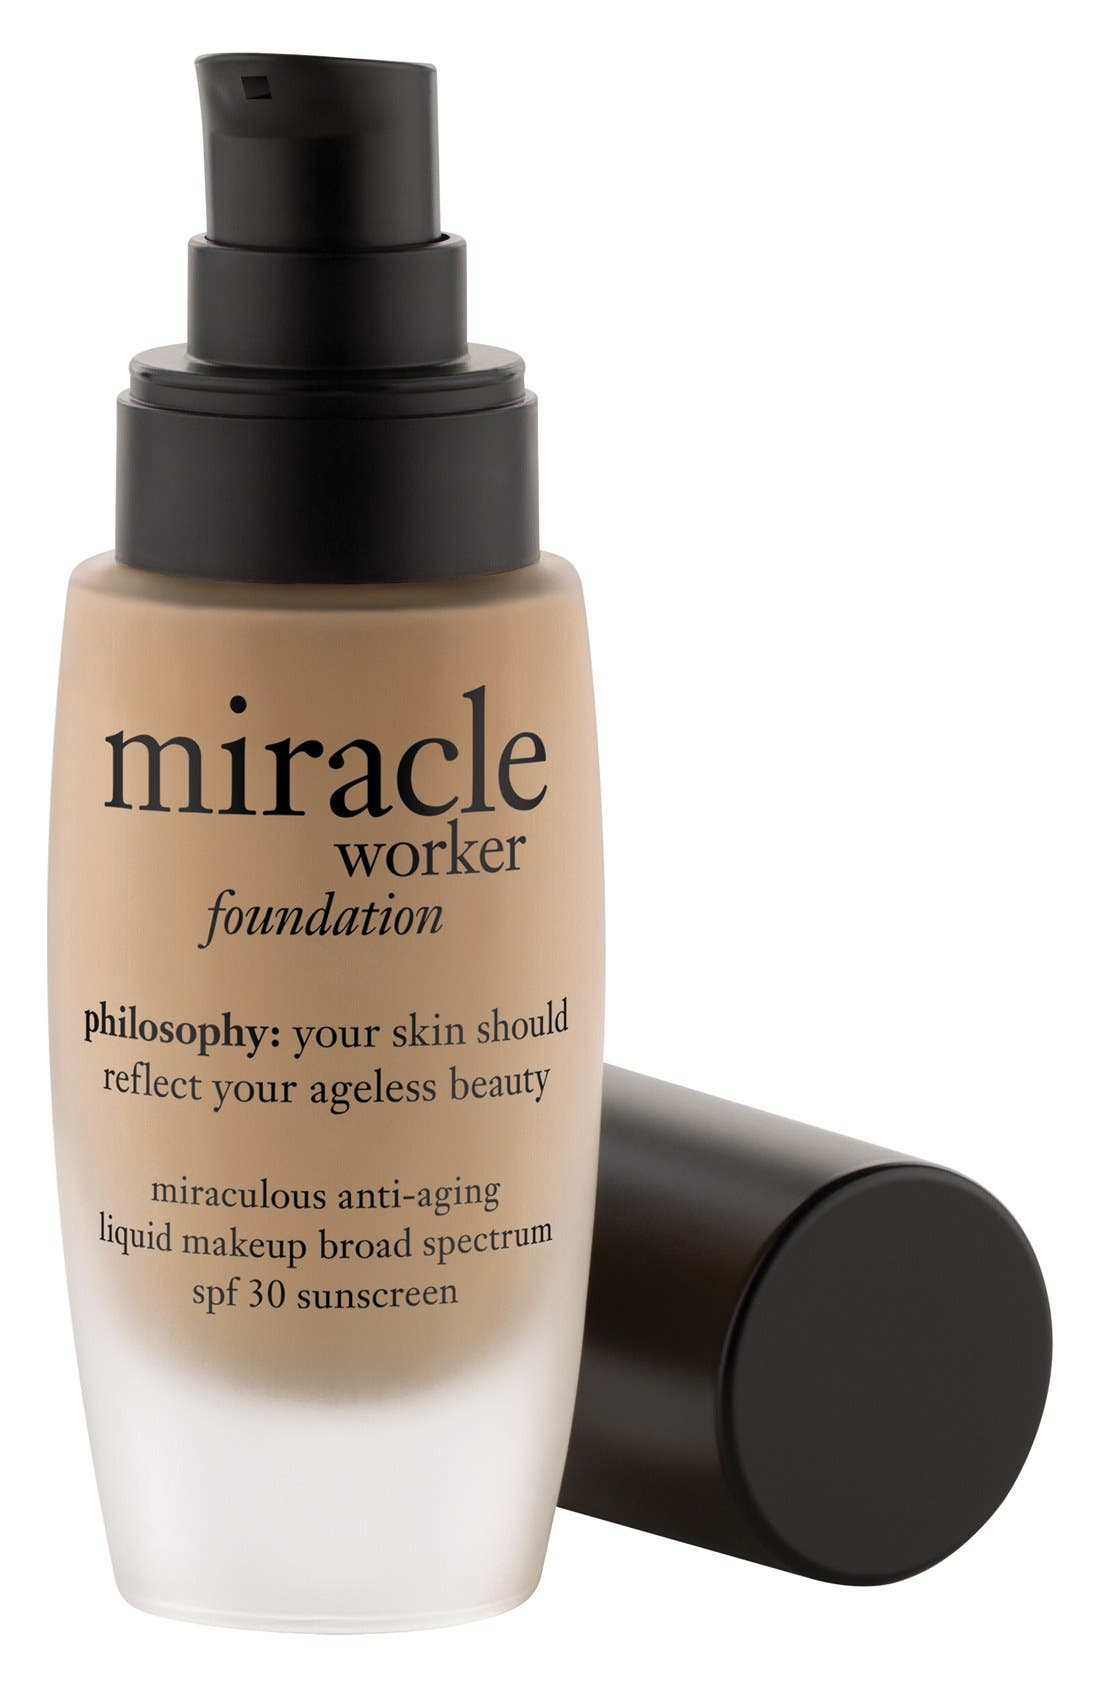 philosophy 'miracle worker' miraculous anti-aging foundation SPF 30